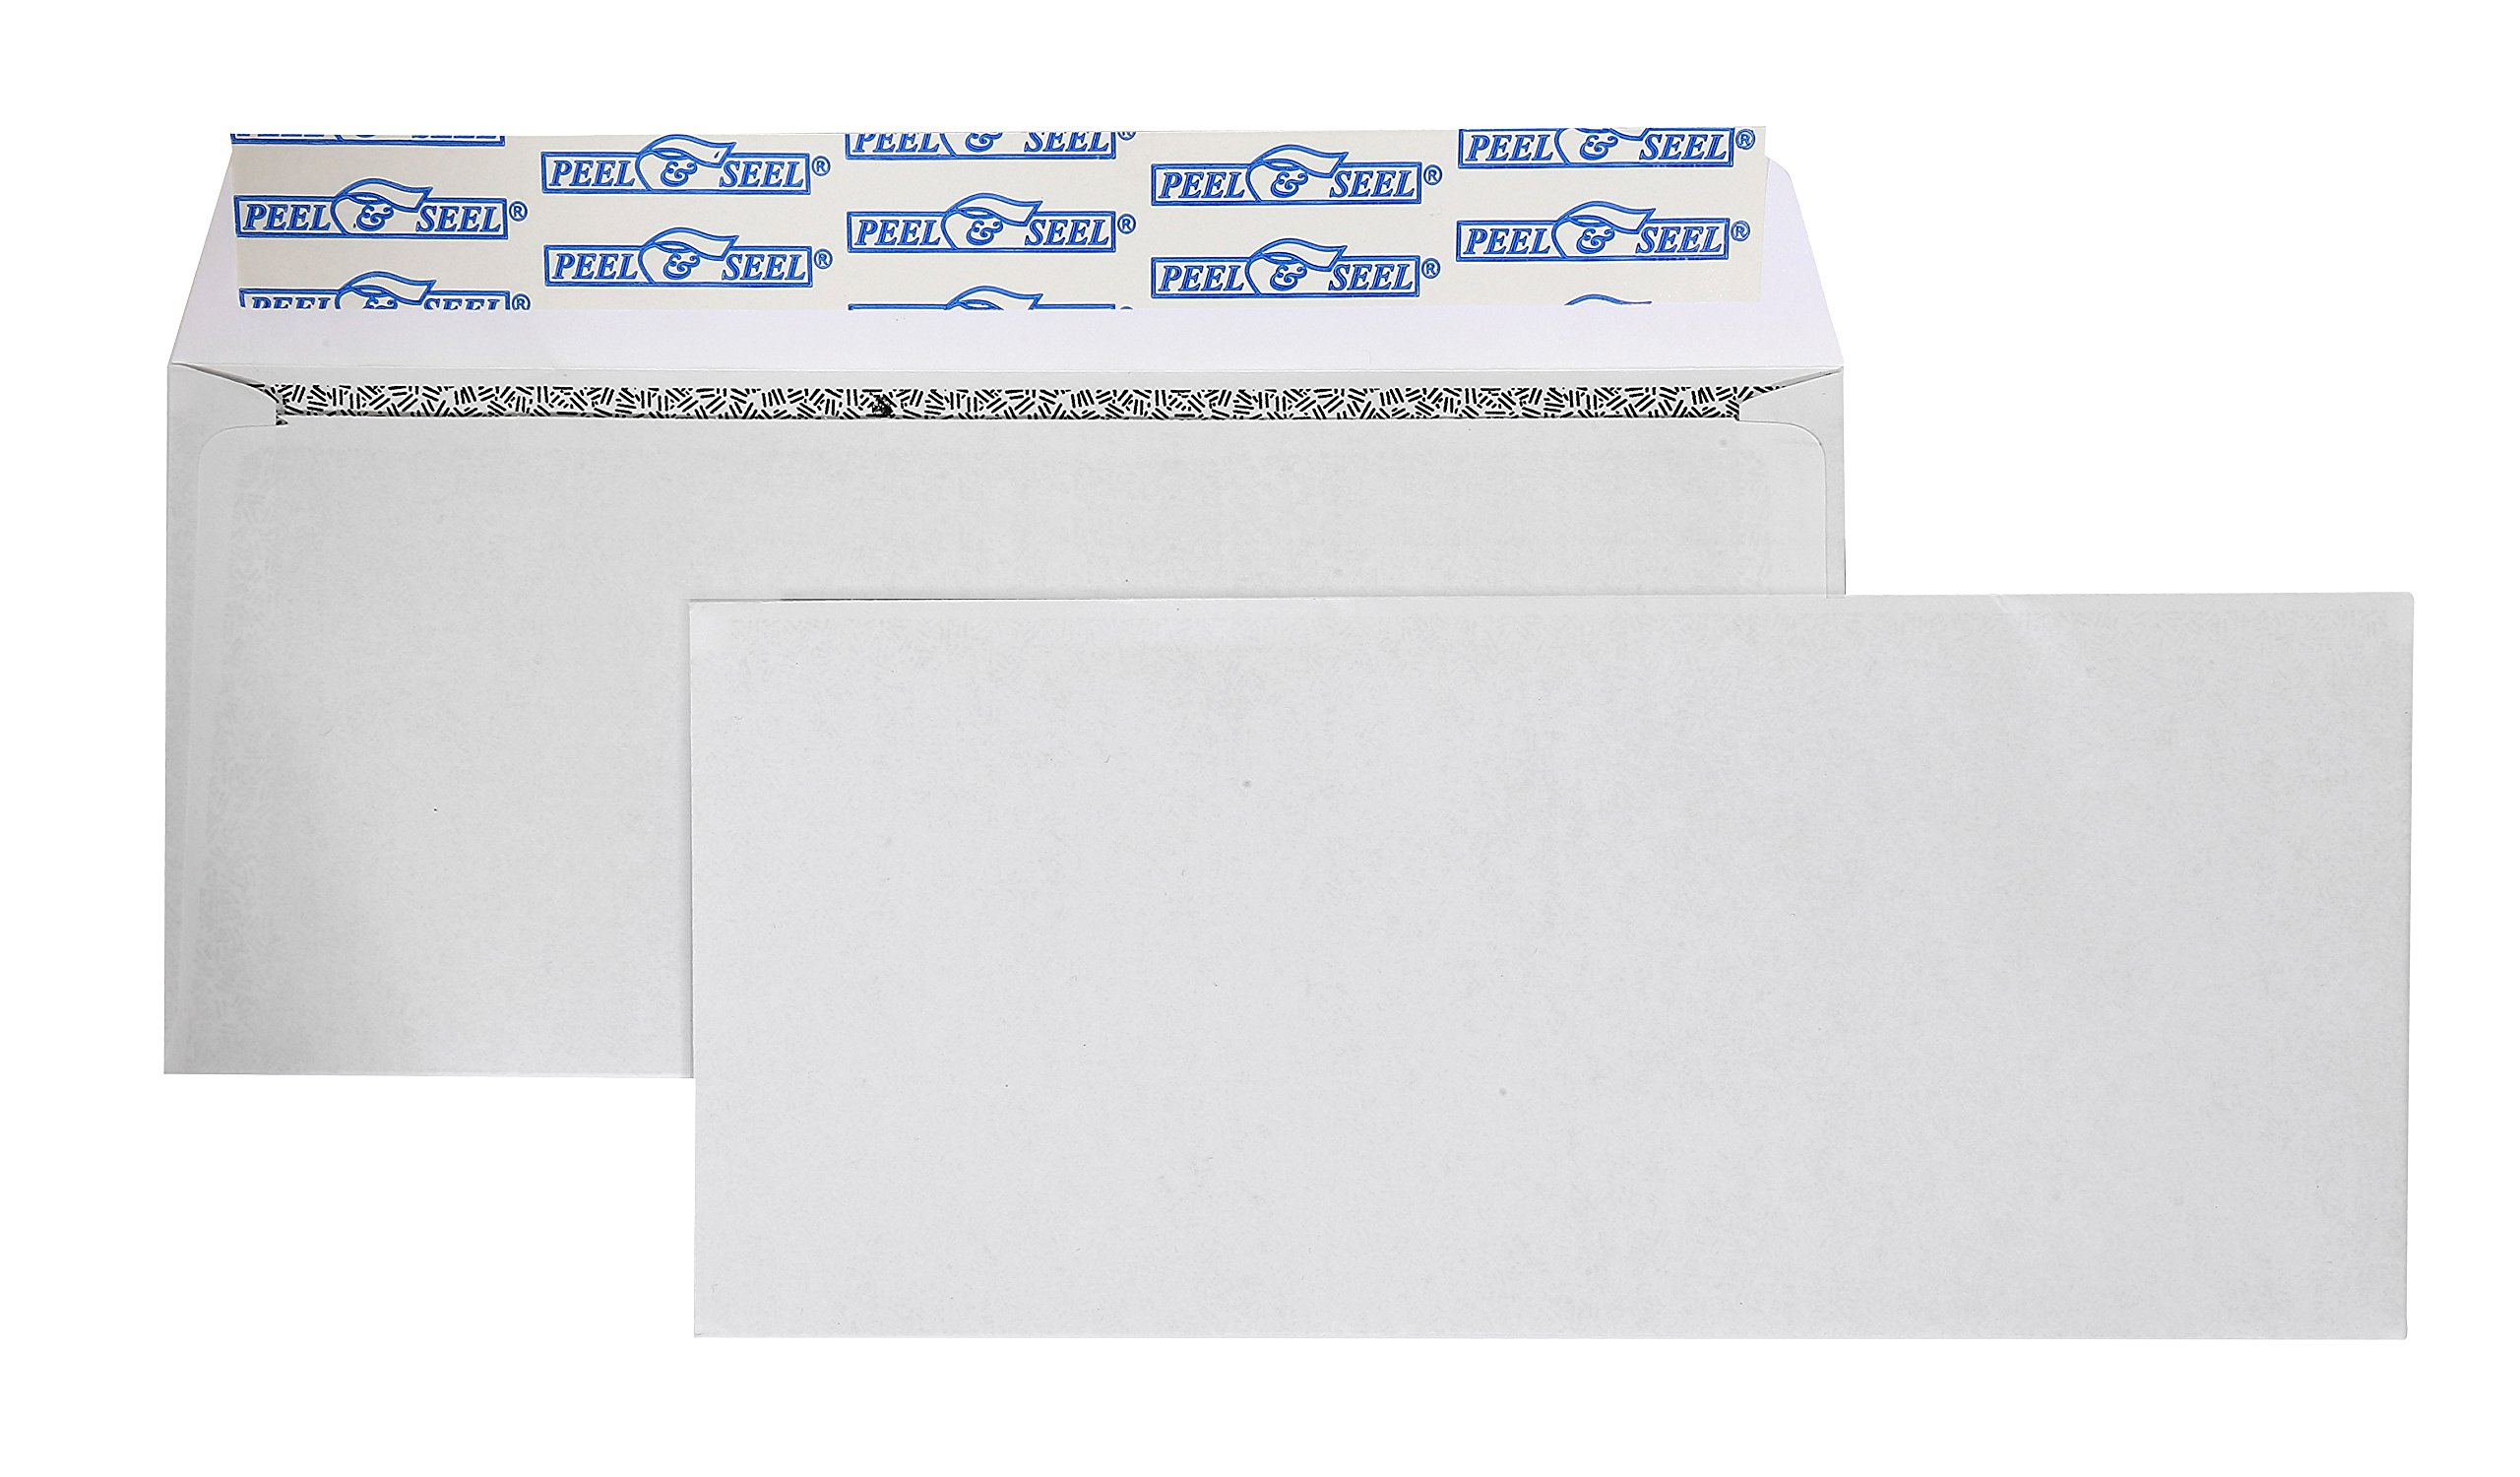 #9 Self Seal Return Envelope Security Tinted Envelopes-Peel to Seal Envelope-3-7/8x8-7/8-Inch White Envelopes-Business Envelopes (500/Box) by EnDoc